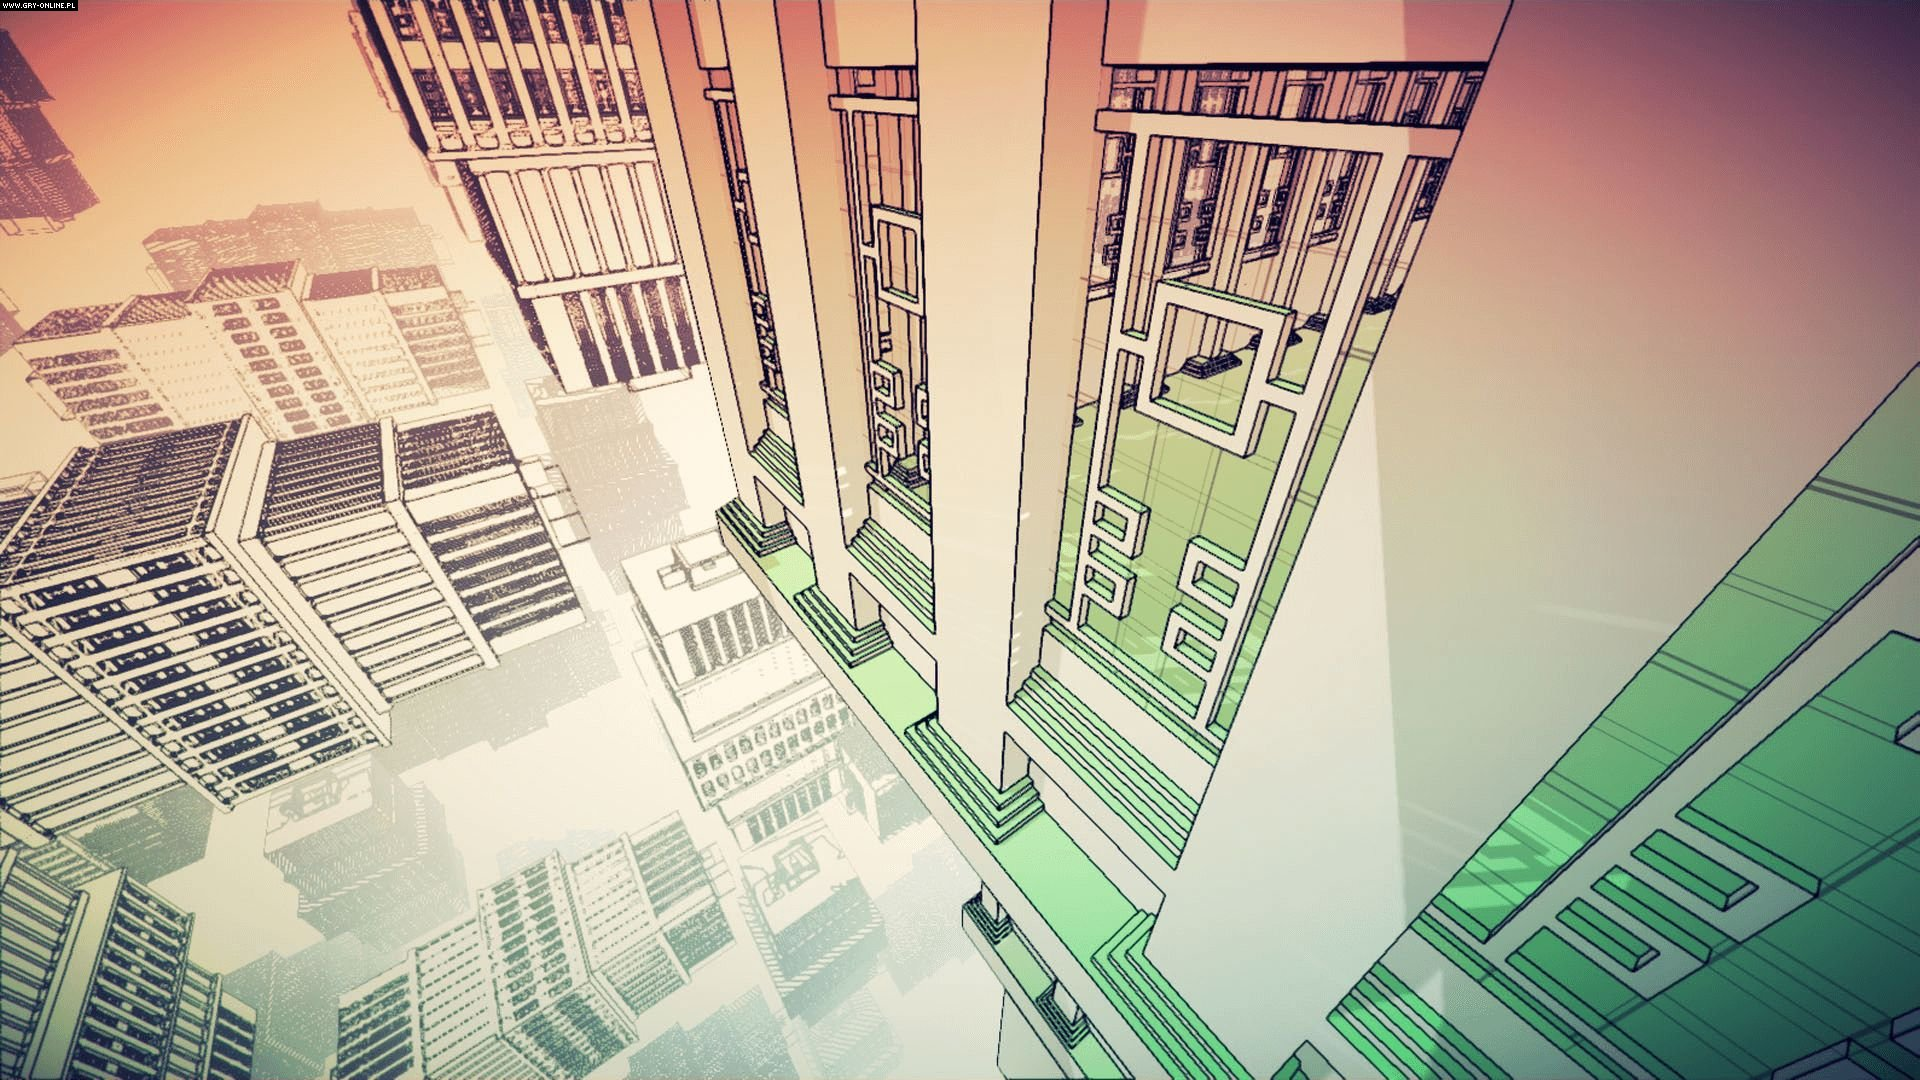 Manifold Garden PC, PS4 Gry Screen 18/23, William Chyr Studio